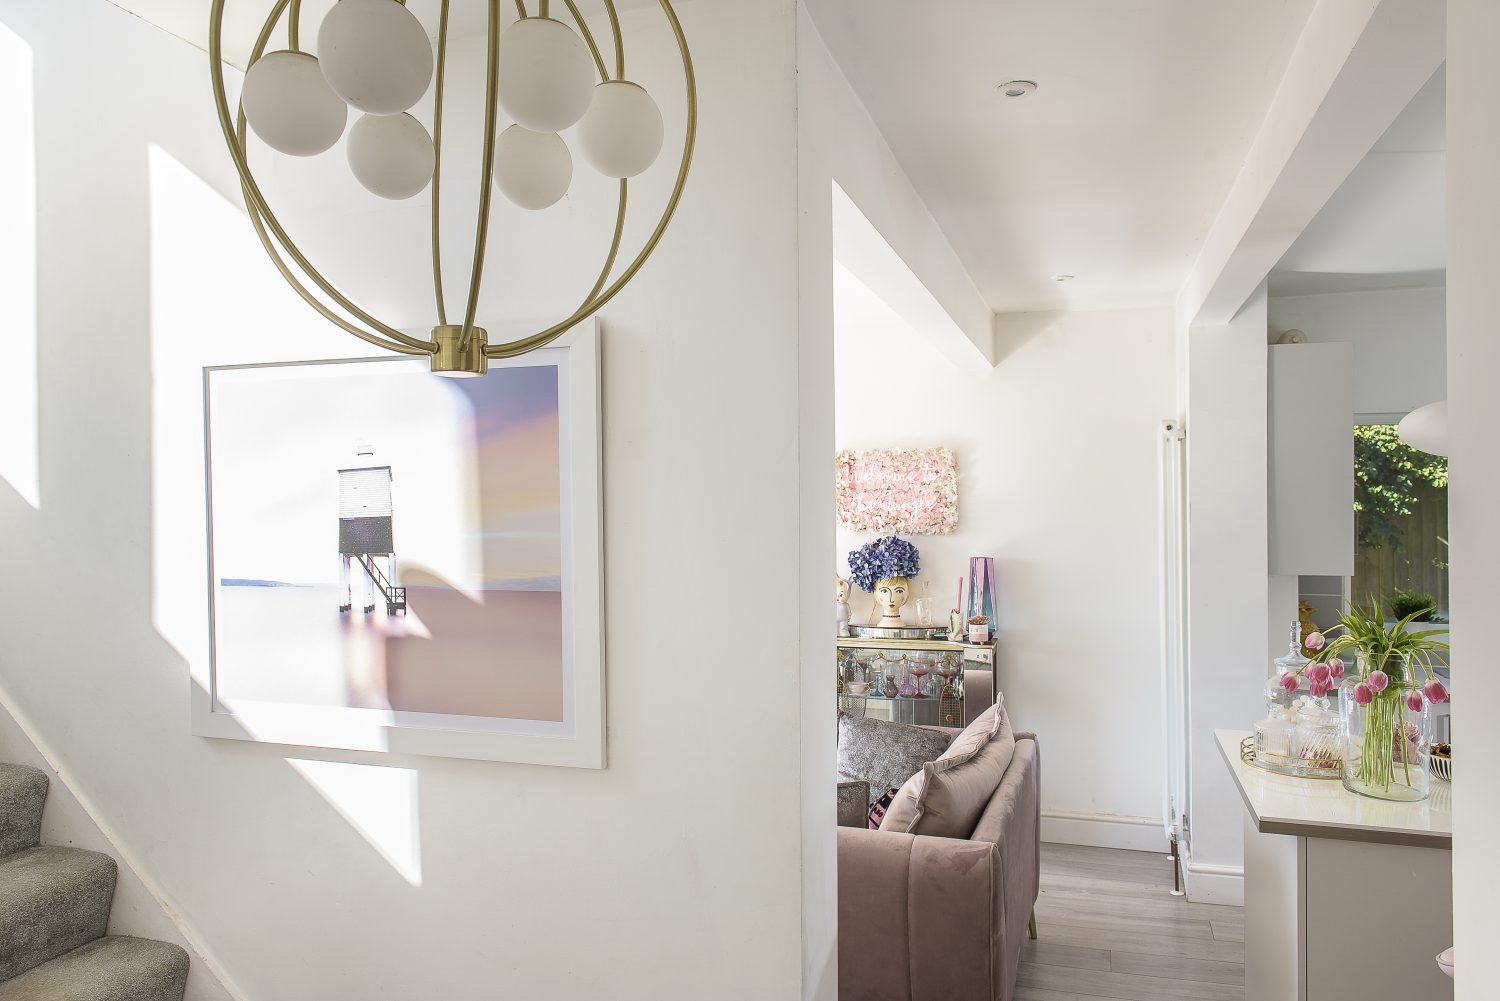 A crisp white interlude between the sitting room and kitchen space, the hallway is filled with light